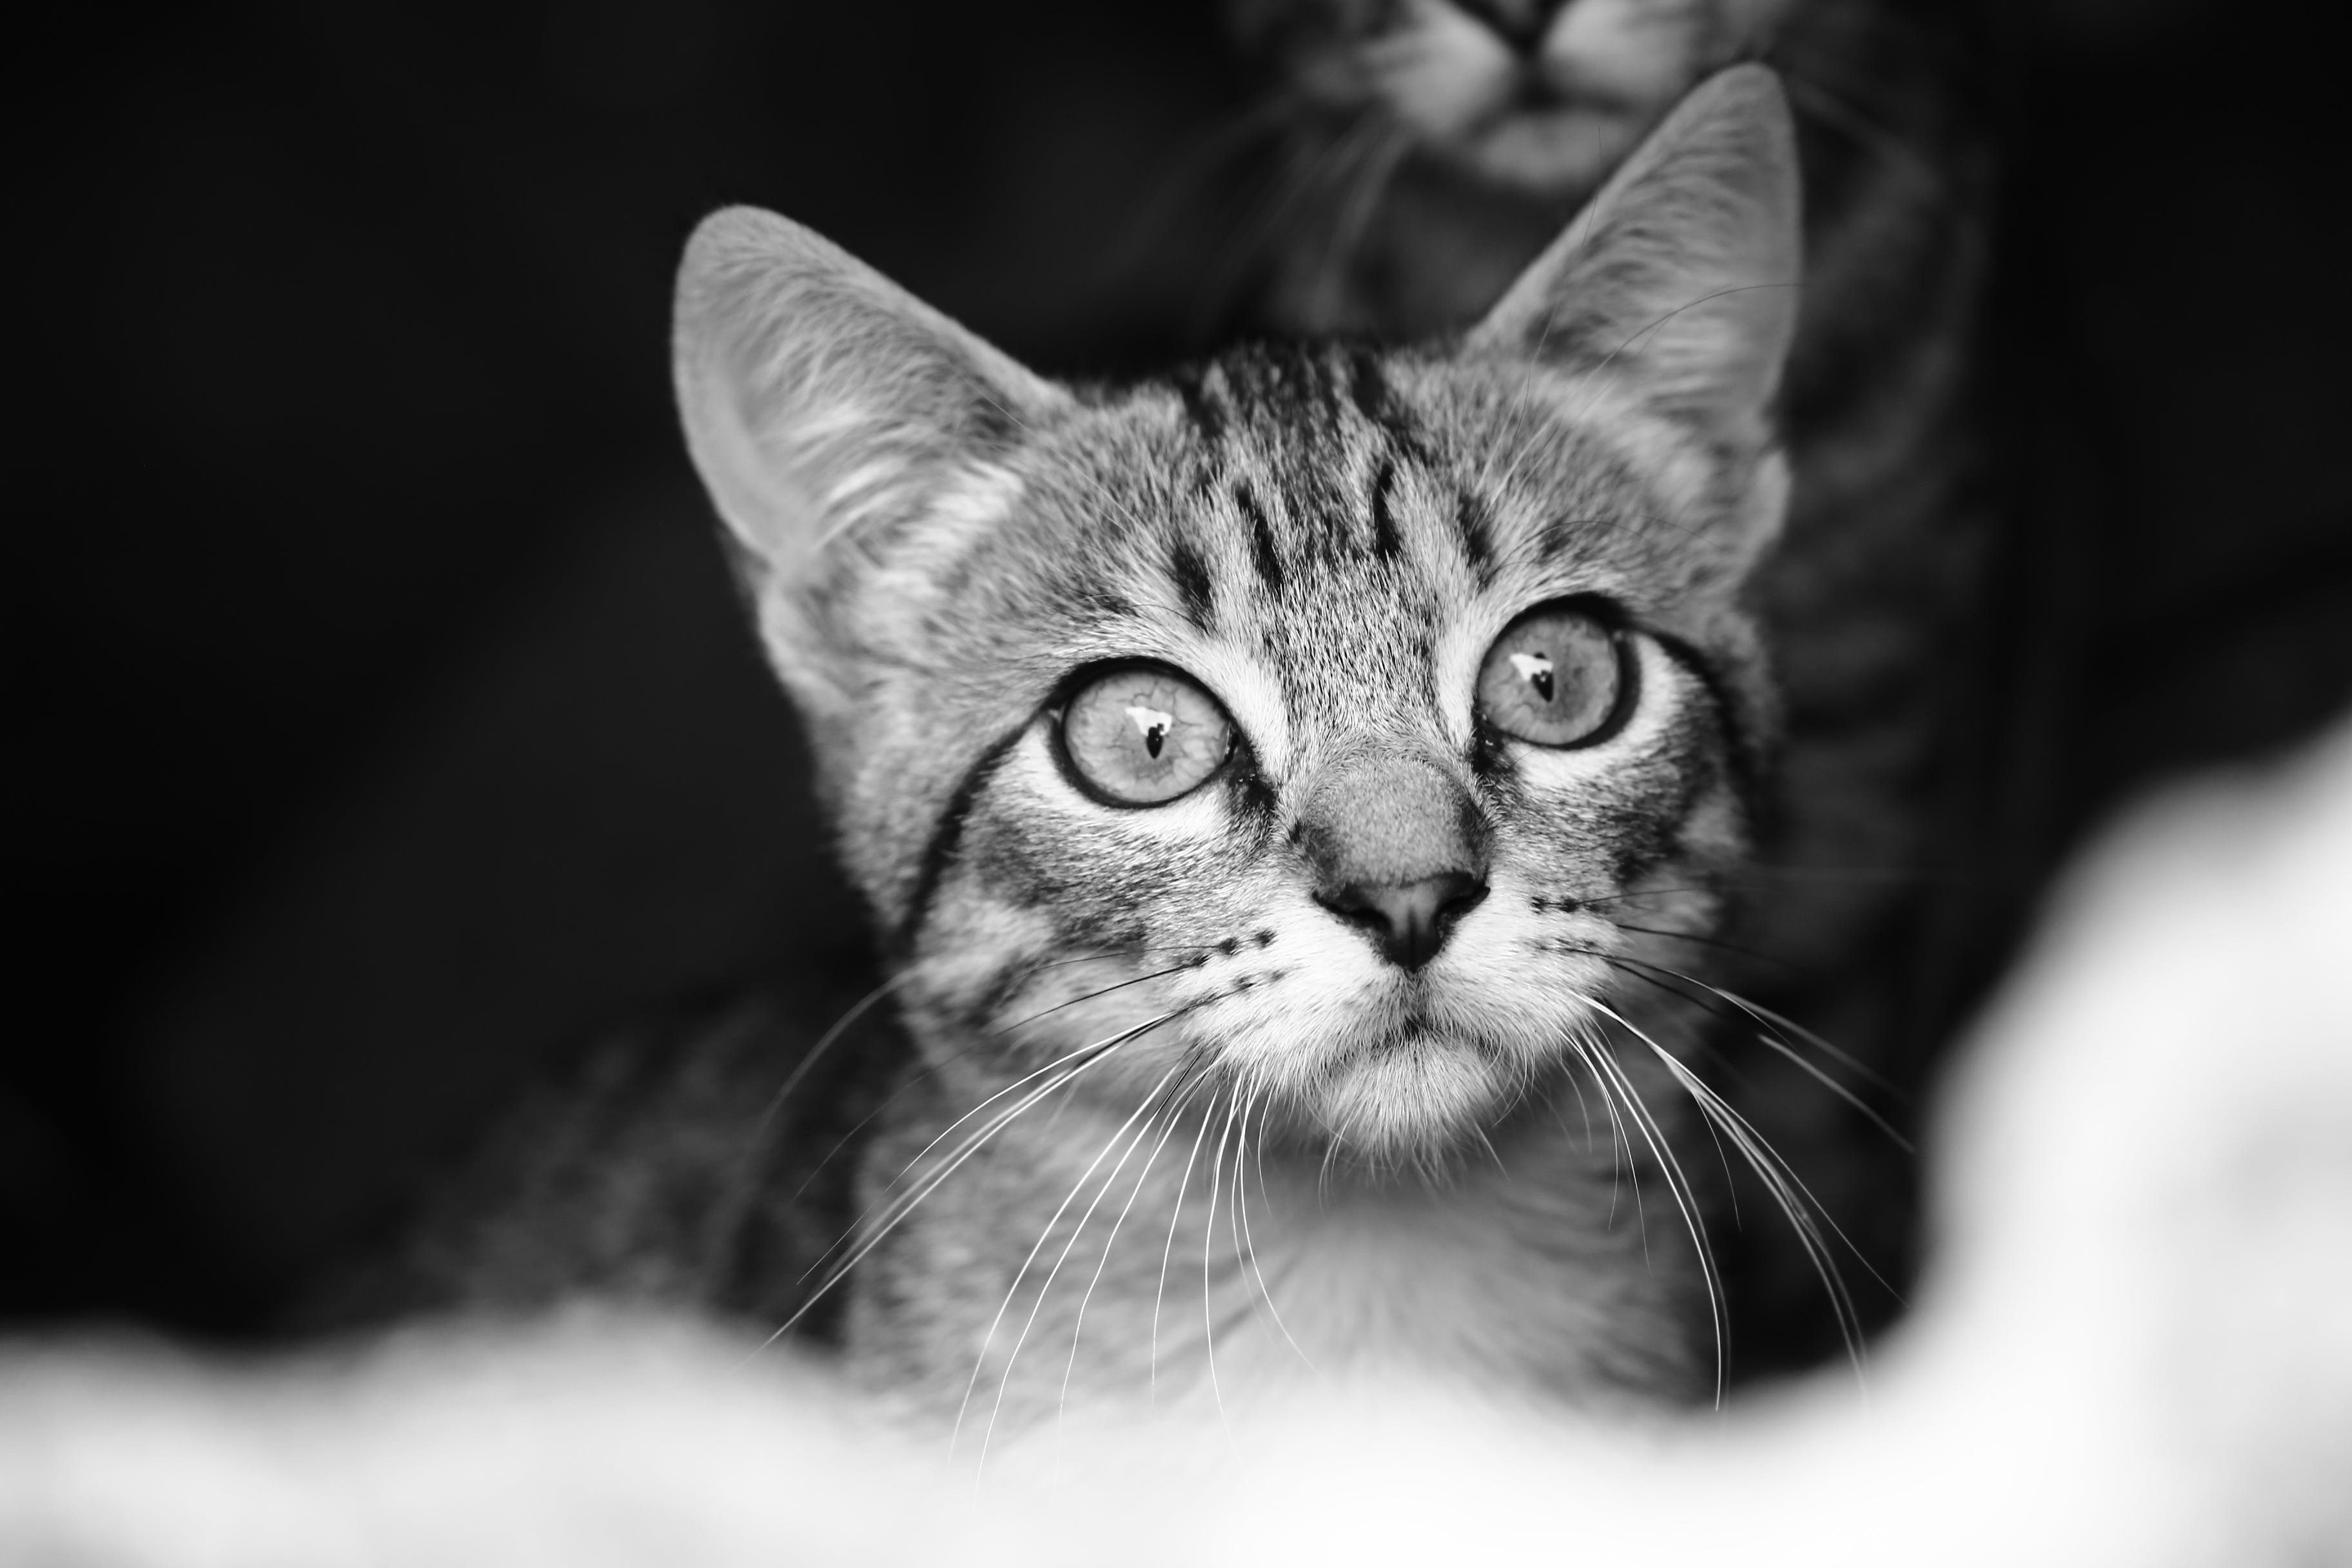 Space Gray Photo of Cat